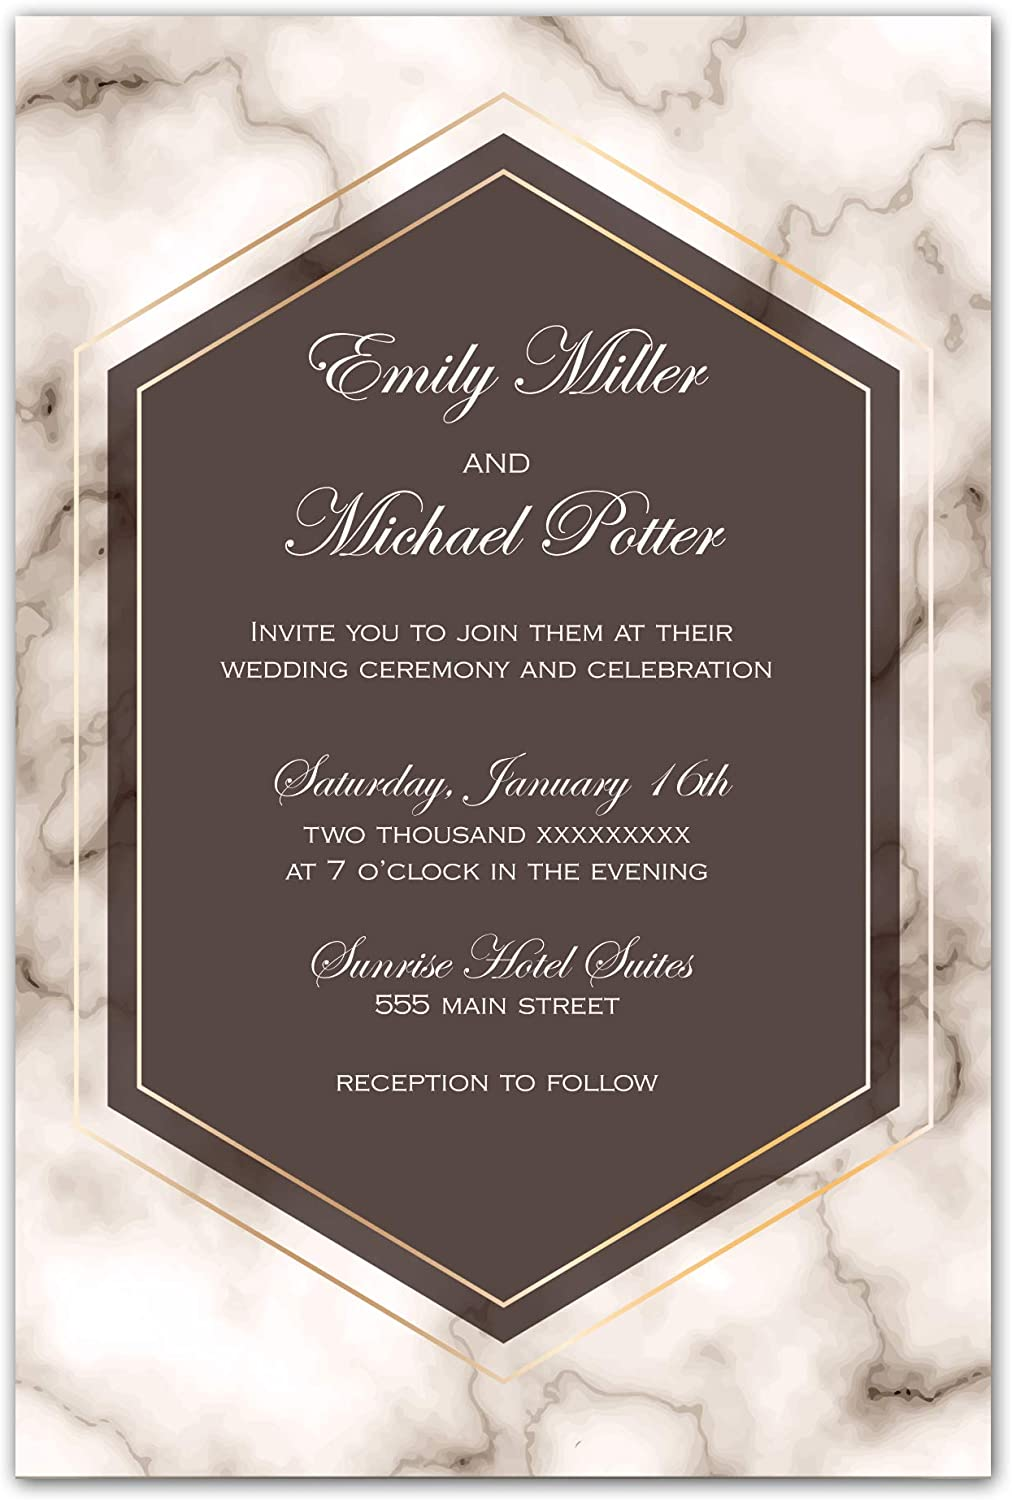 Amazon.com: 100 Wedding Invitations Brown Marble Personalized + Envelopes:  Kitchen & Dining